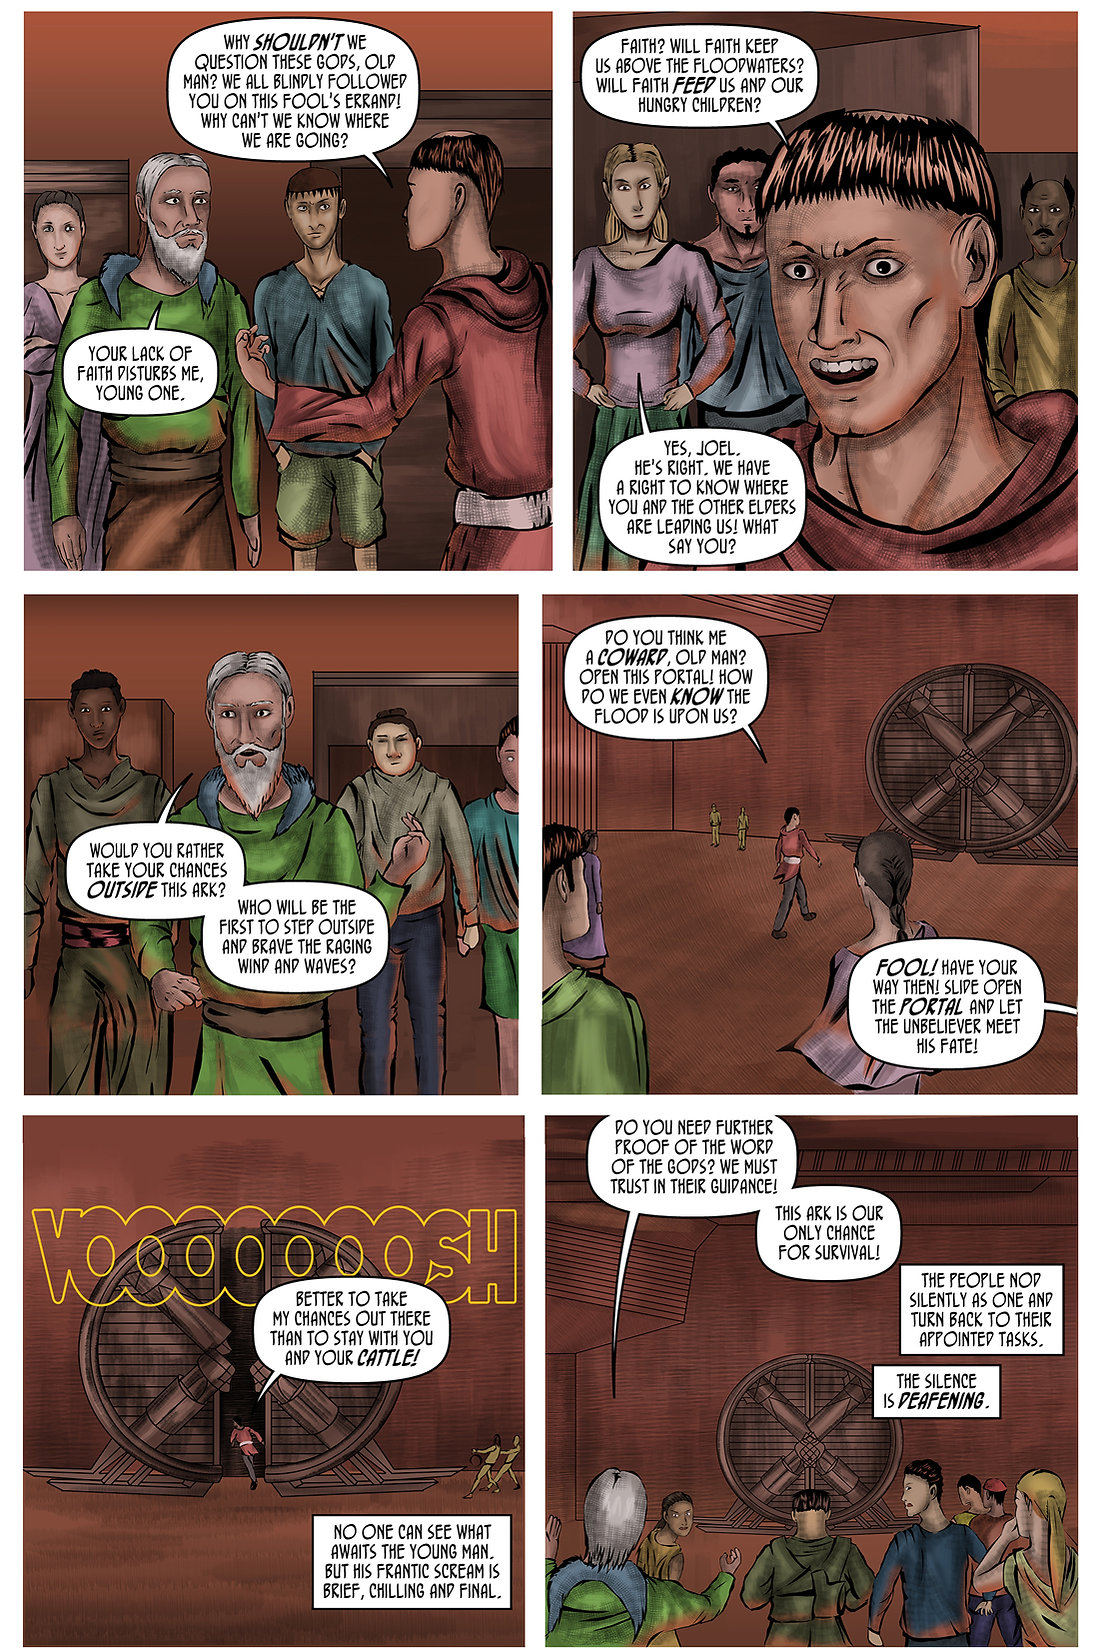 TheArk_Page 02.jpg